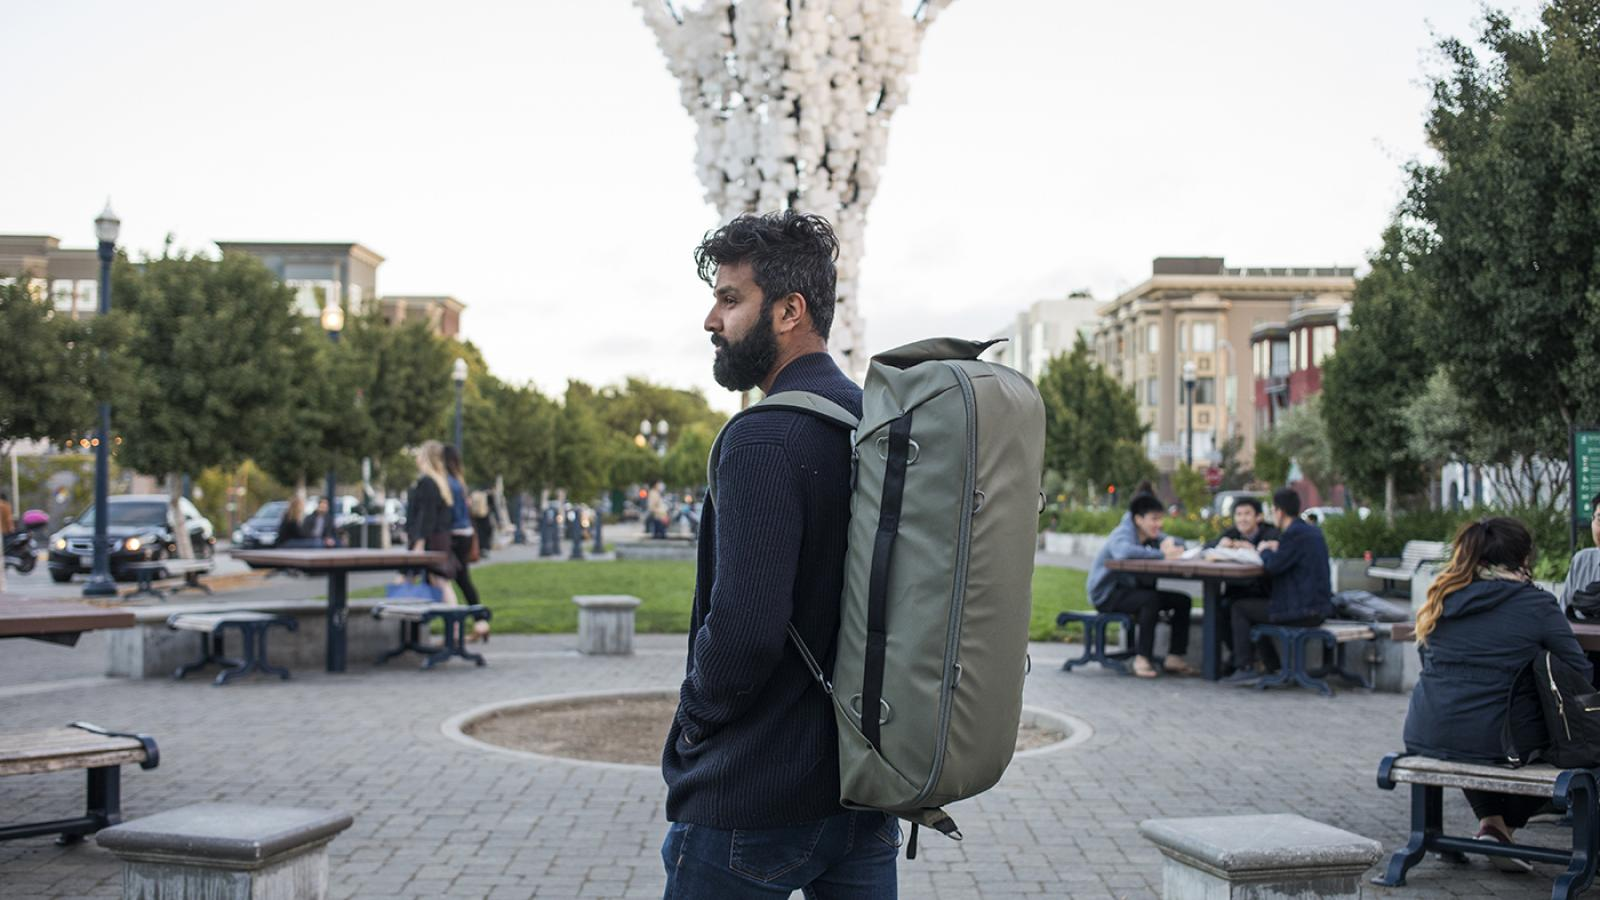 Peak Design: Say hello to the Travel Duffle 35L & Dufflepack 65L